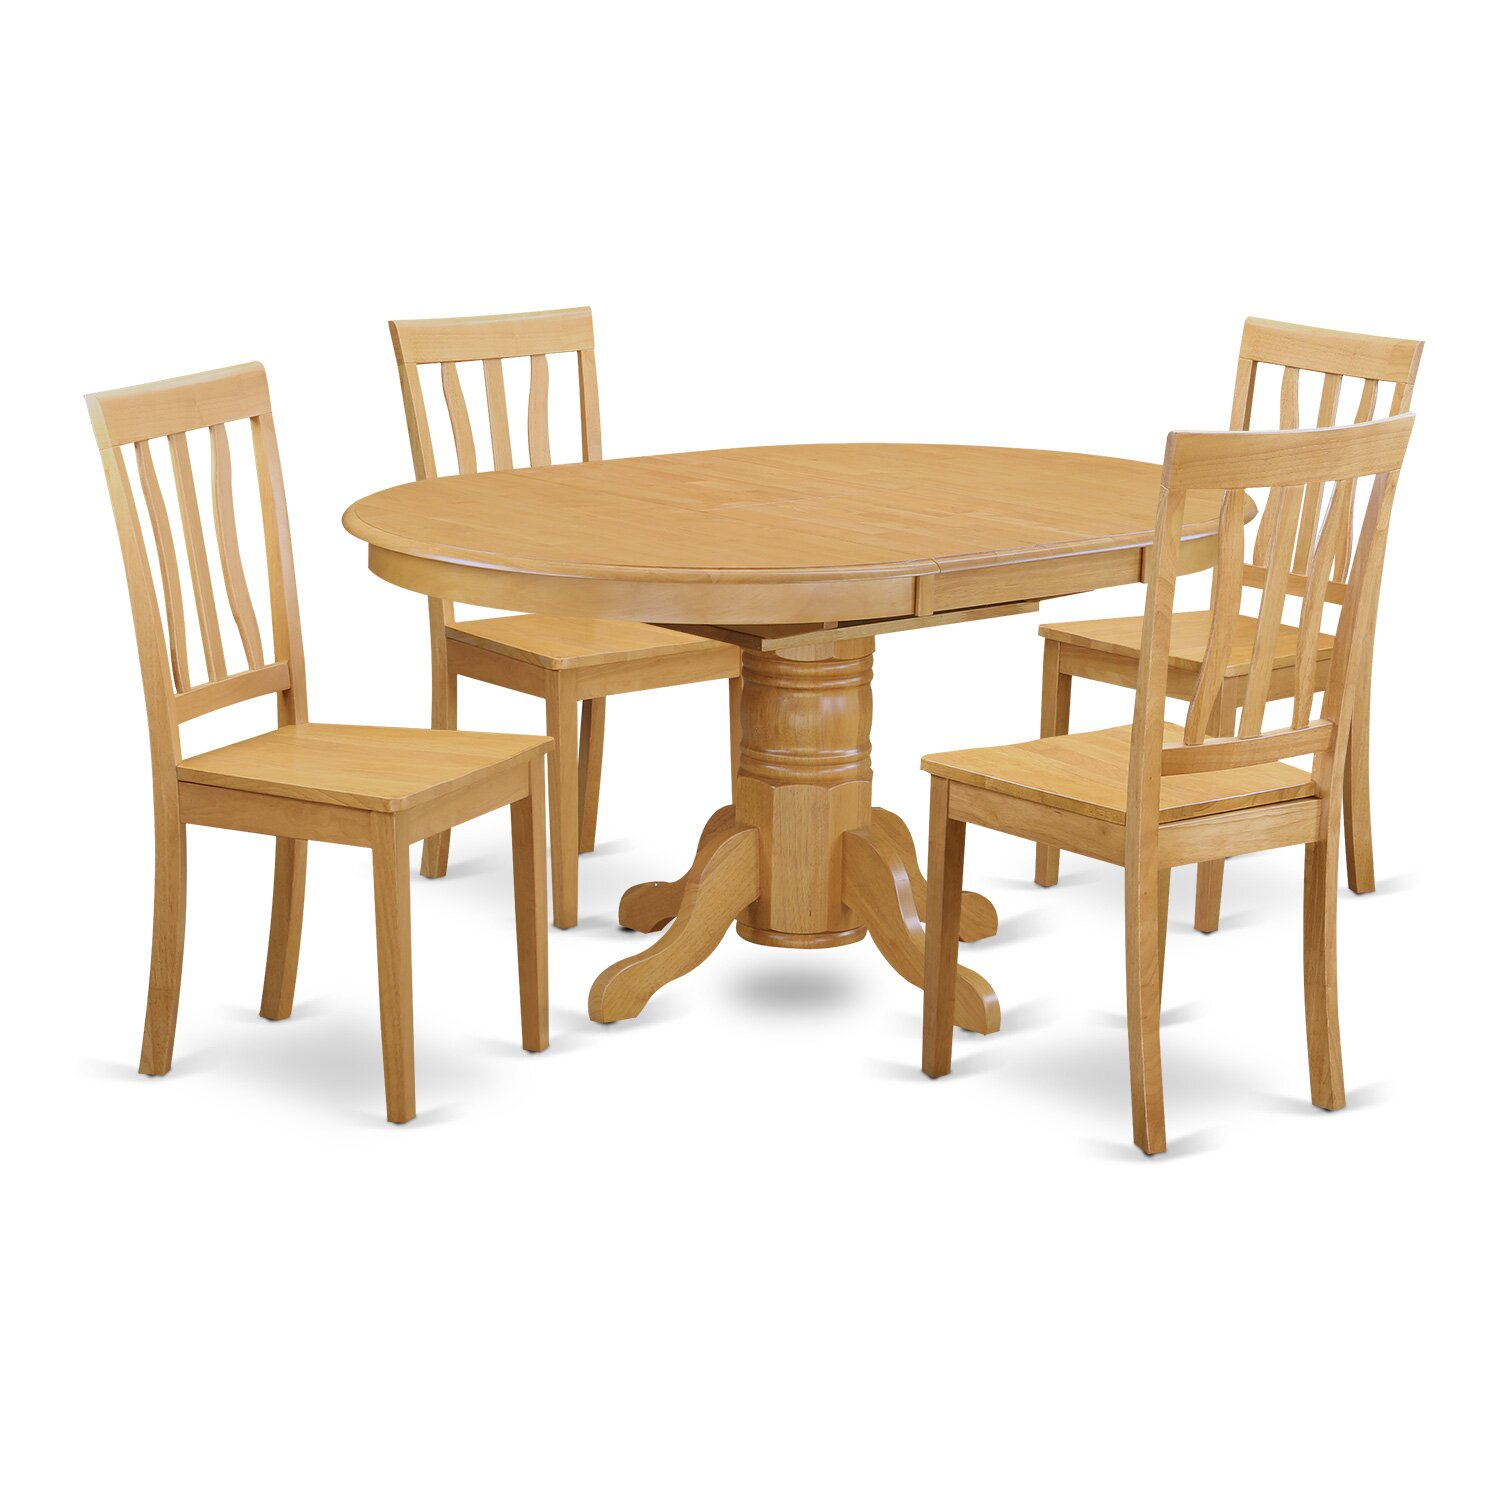 Easton 5 piece dining set wayfair for Dining room tables easton